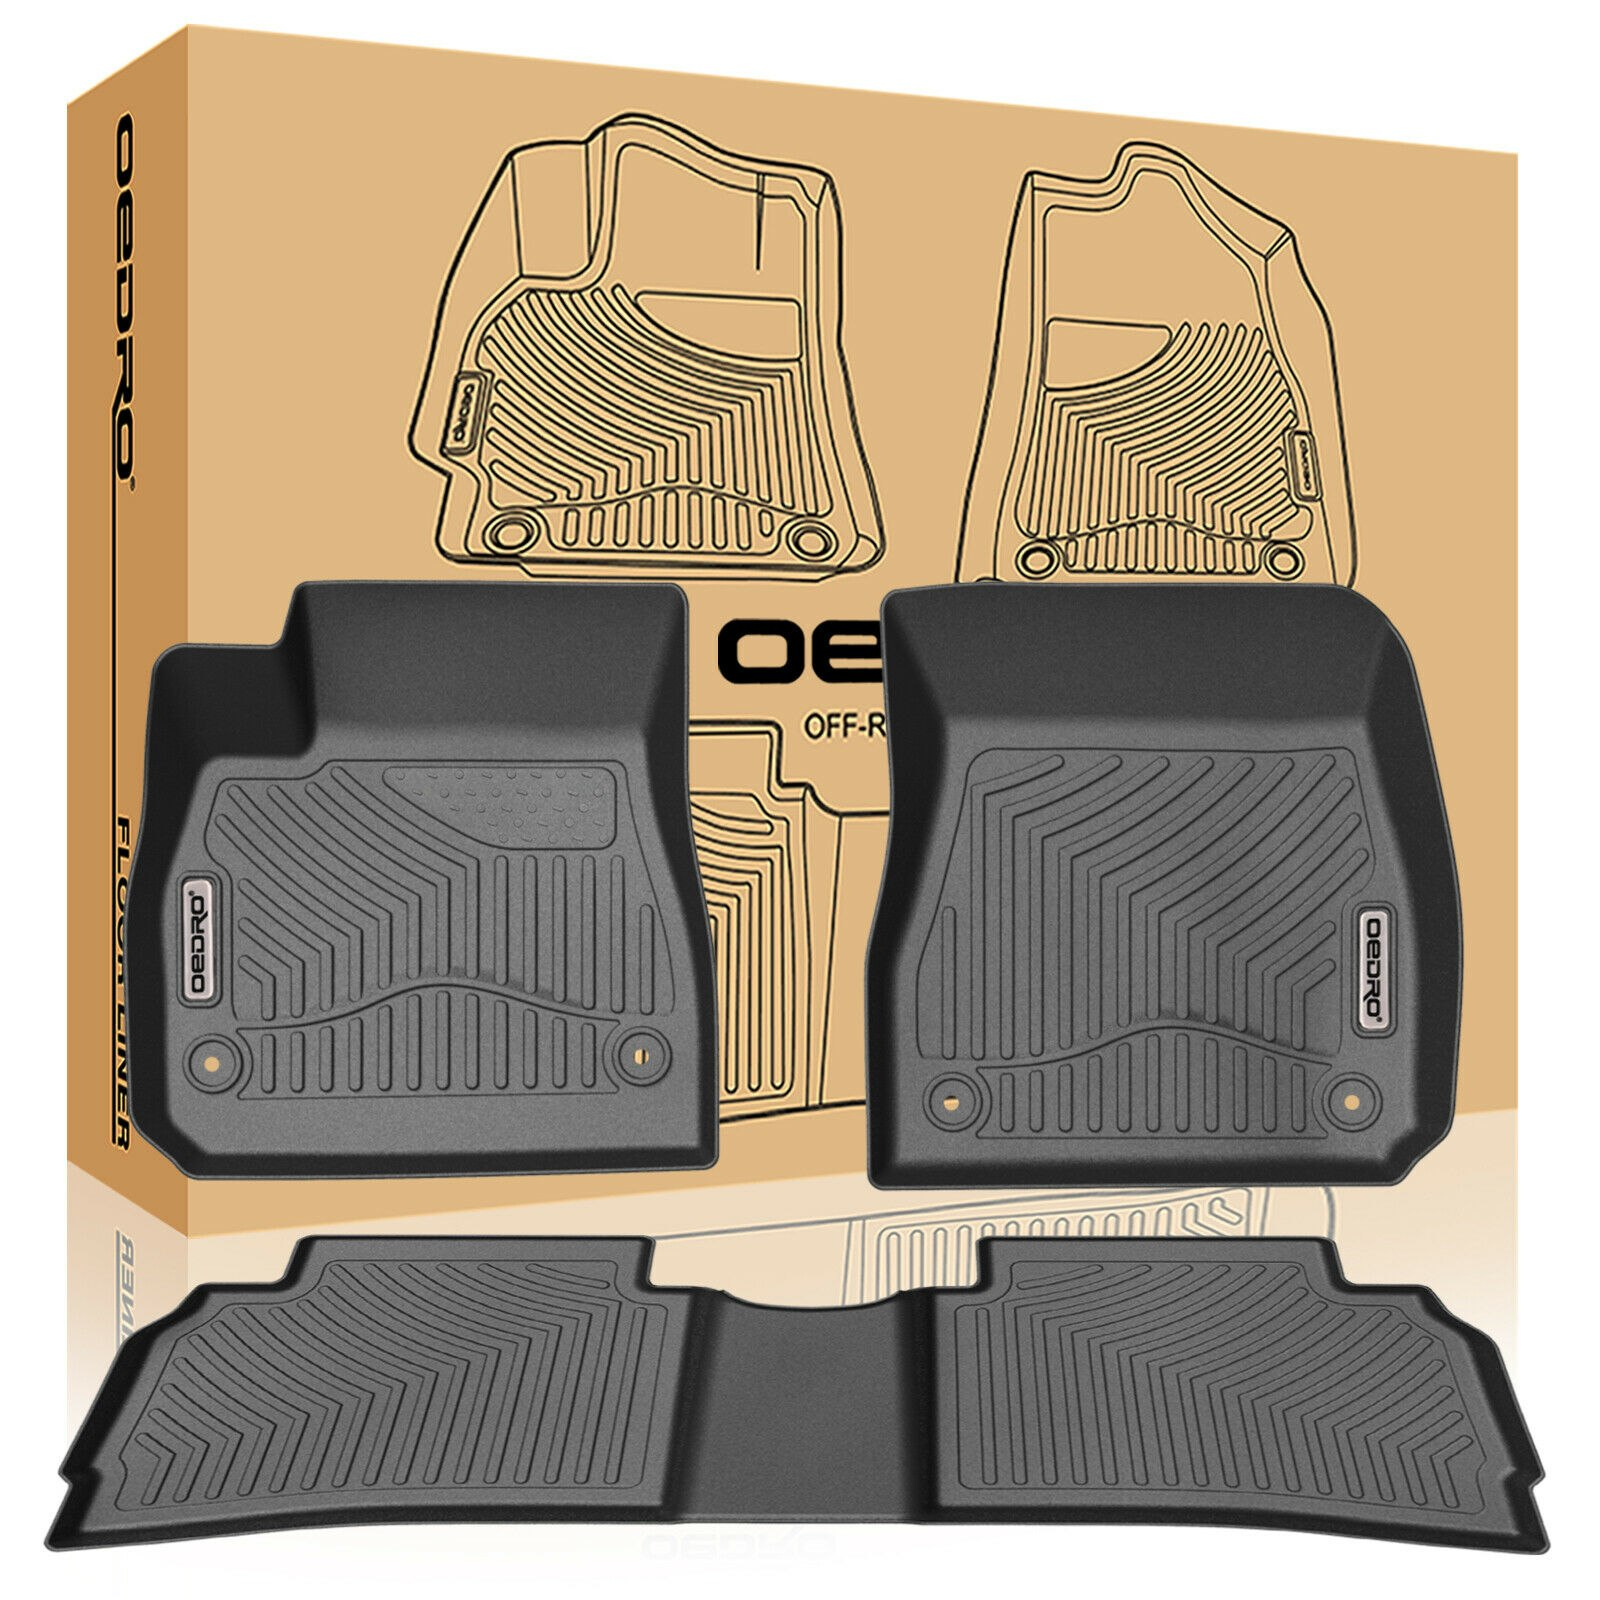 oEdRo Heavy Duty Rubber Floor Mats Black for 2016-2019 Chevrolet Malibu Full Set Liners All-Weather;includes 1st & 2nd Front Row and Rear Floor Liner Full Set